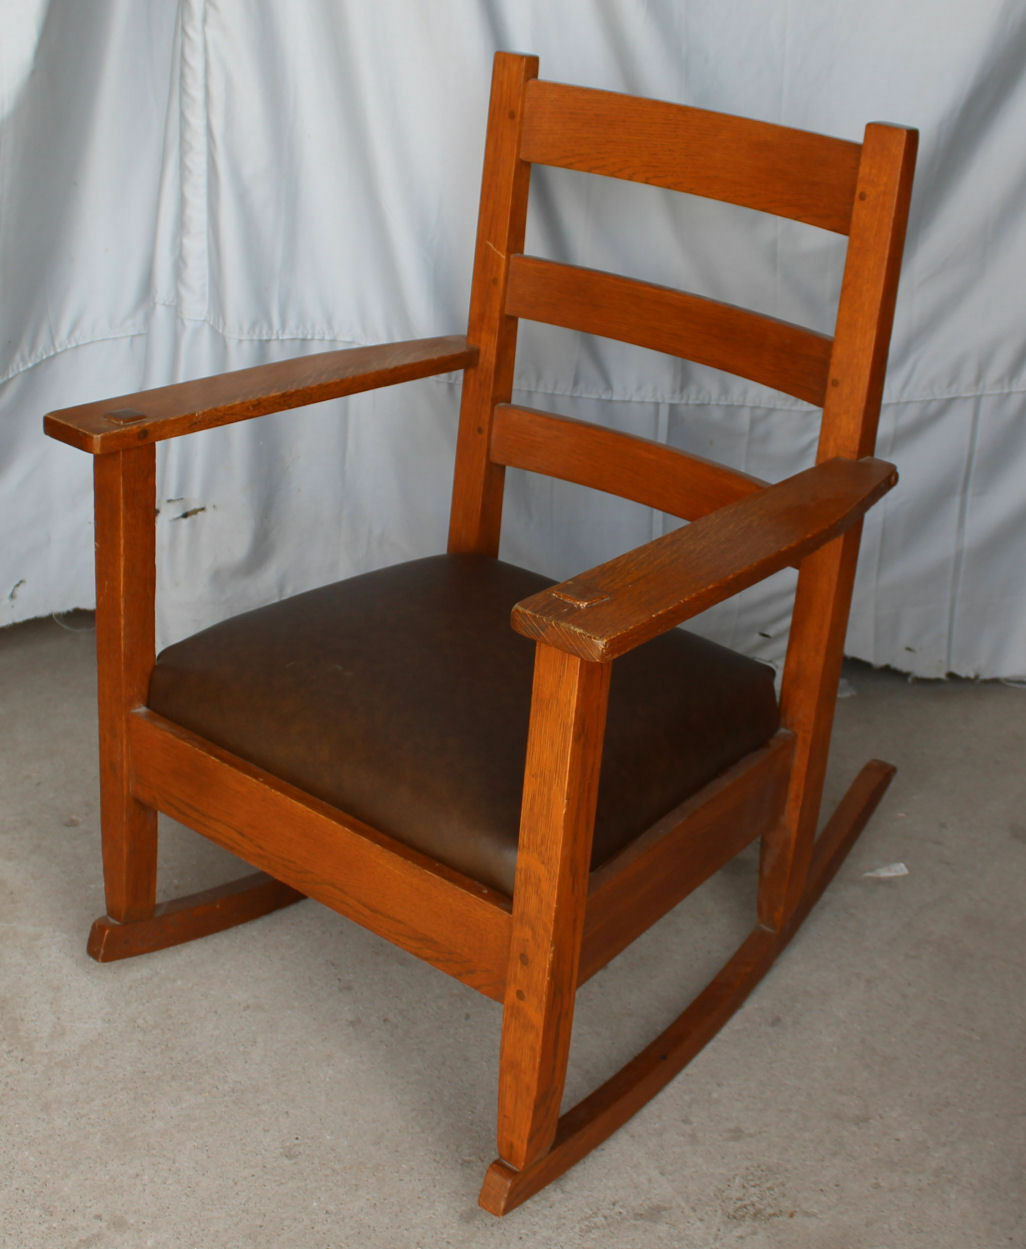 Antique Mission Oak Rocking Chair Rocker Lifetime Furniture Company Arts &  Craft 1 of 8Only 1 available ... - ANTIQUE MISSION OAK Rocking Chair Rocker Lifetime Furniture Company